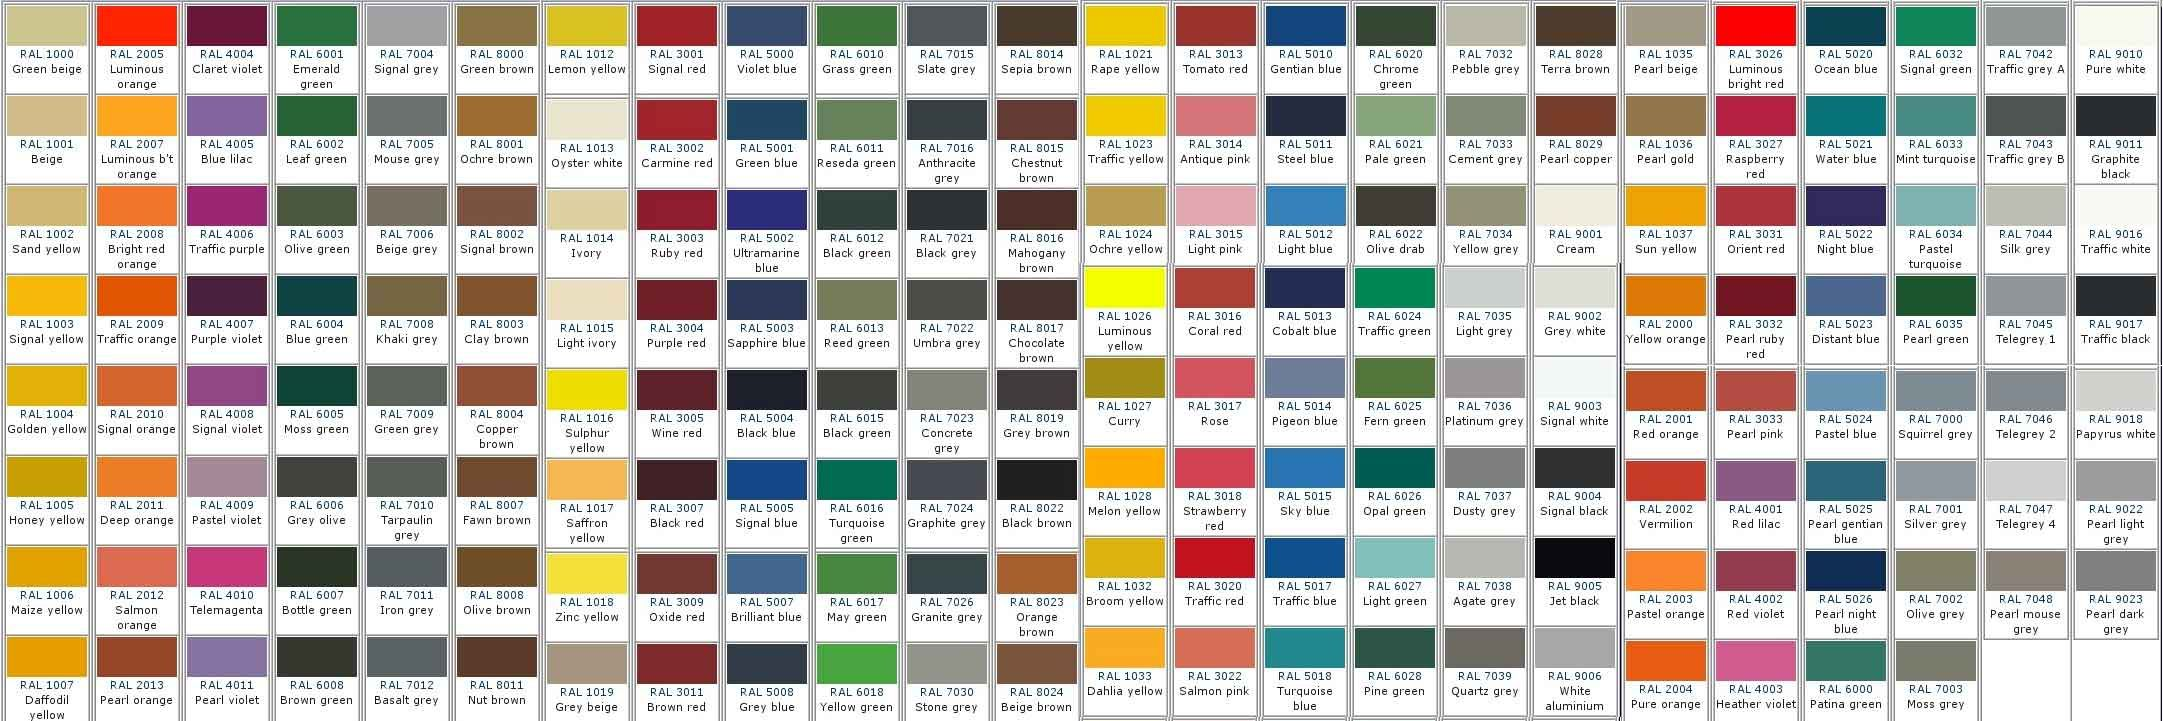 Ral pantone color chart images free ral pantone color chart ral pantone color chart images free ral pantone color chart wallpapers freelargepics nvjuhfo Images